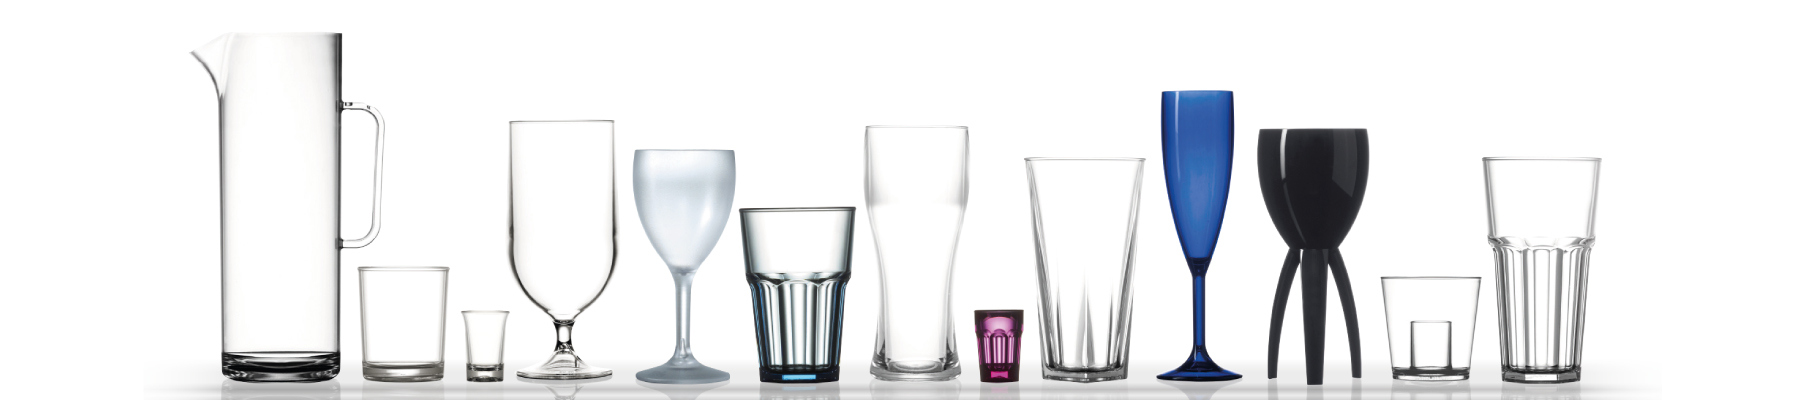 range of plastic glass styles for catering in Hampshire